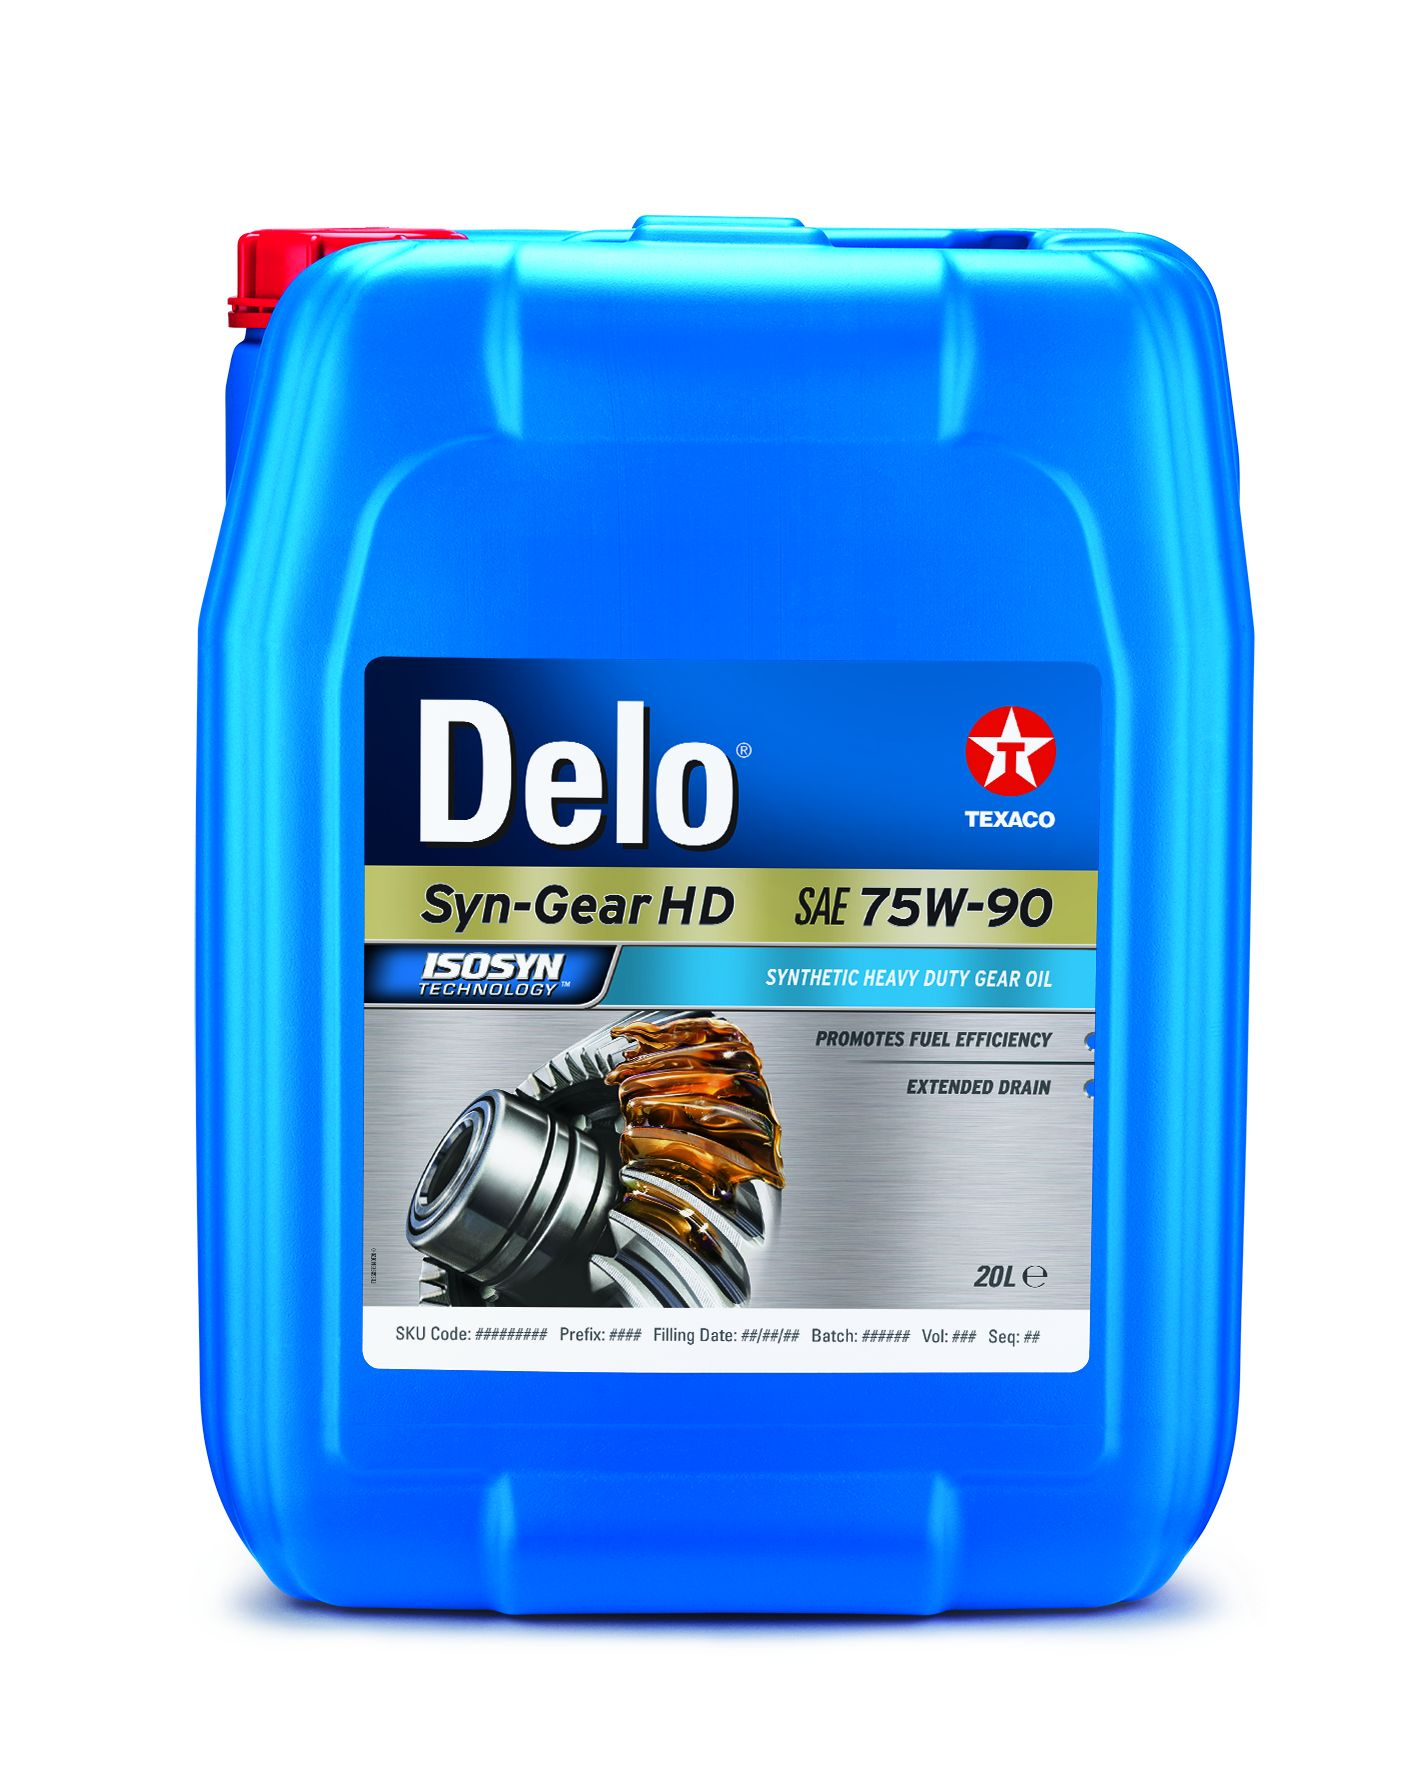 DELO SYN-GEAR HD 75W-90